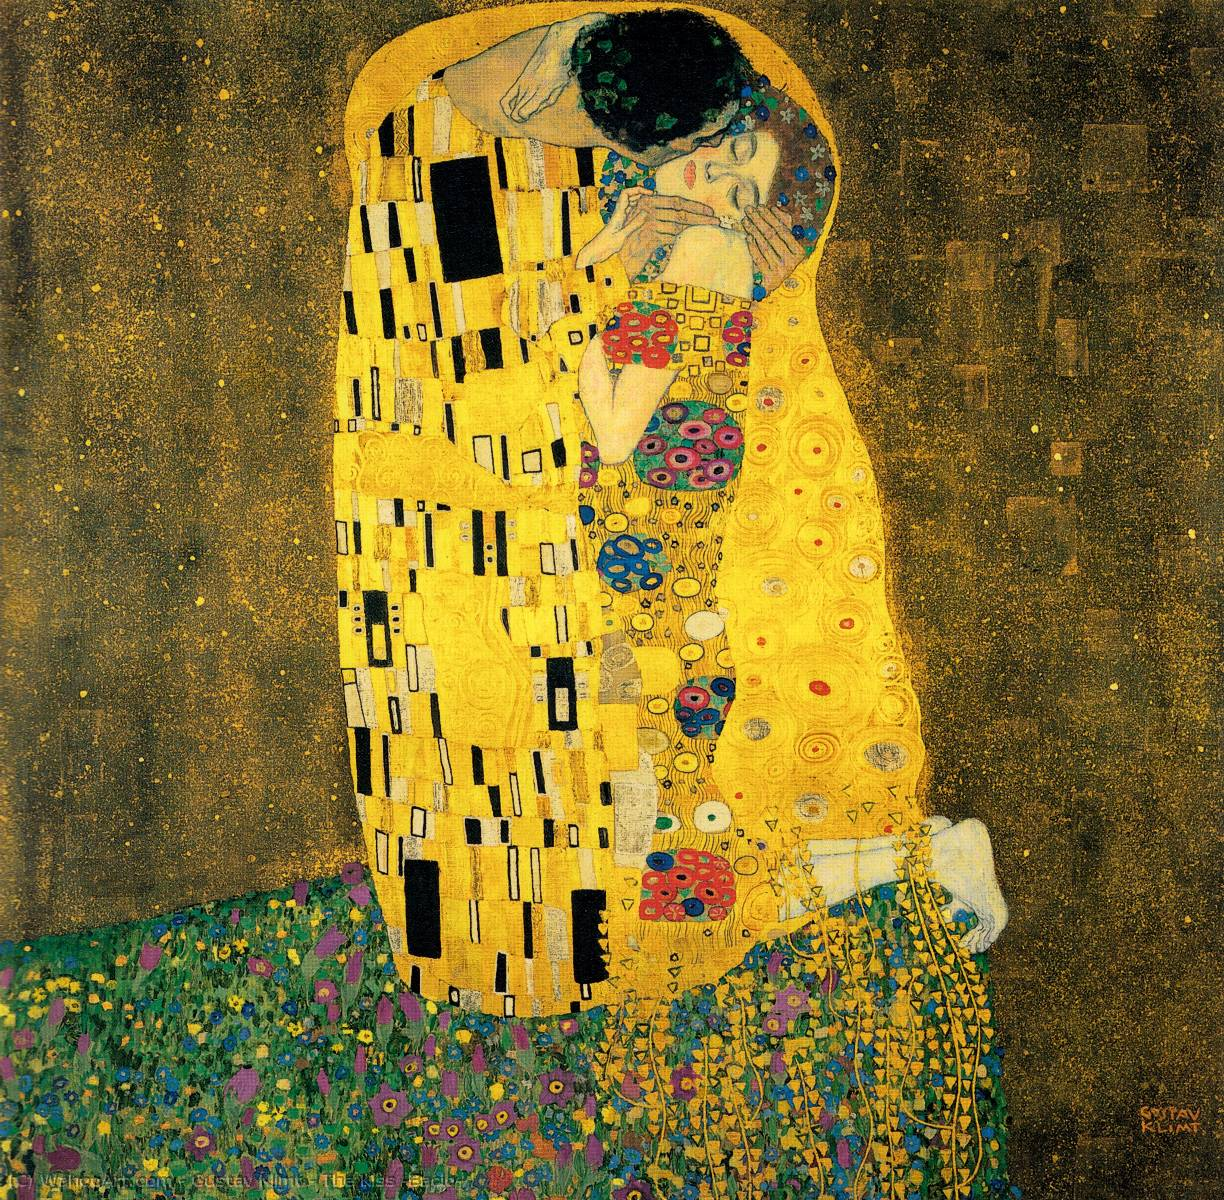 Order Paintings Reproductions | The Kiss (Bacio) by Gustav Klimt | Most-Famous-Paintings.com